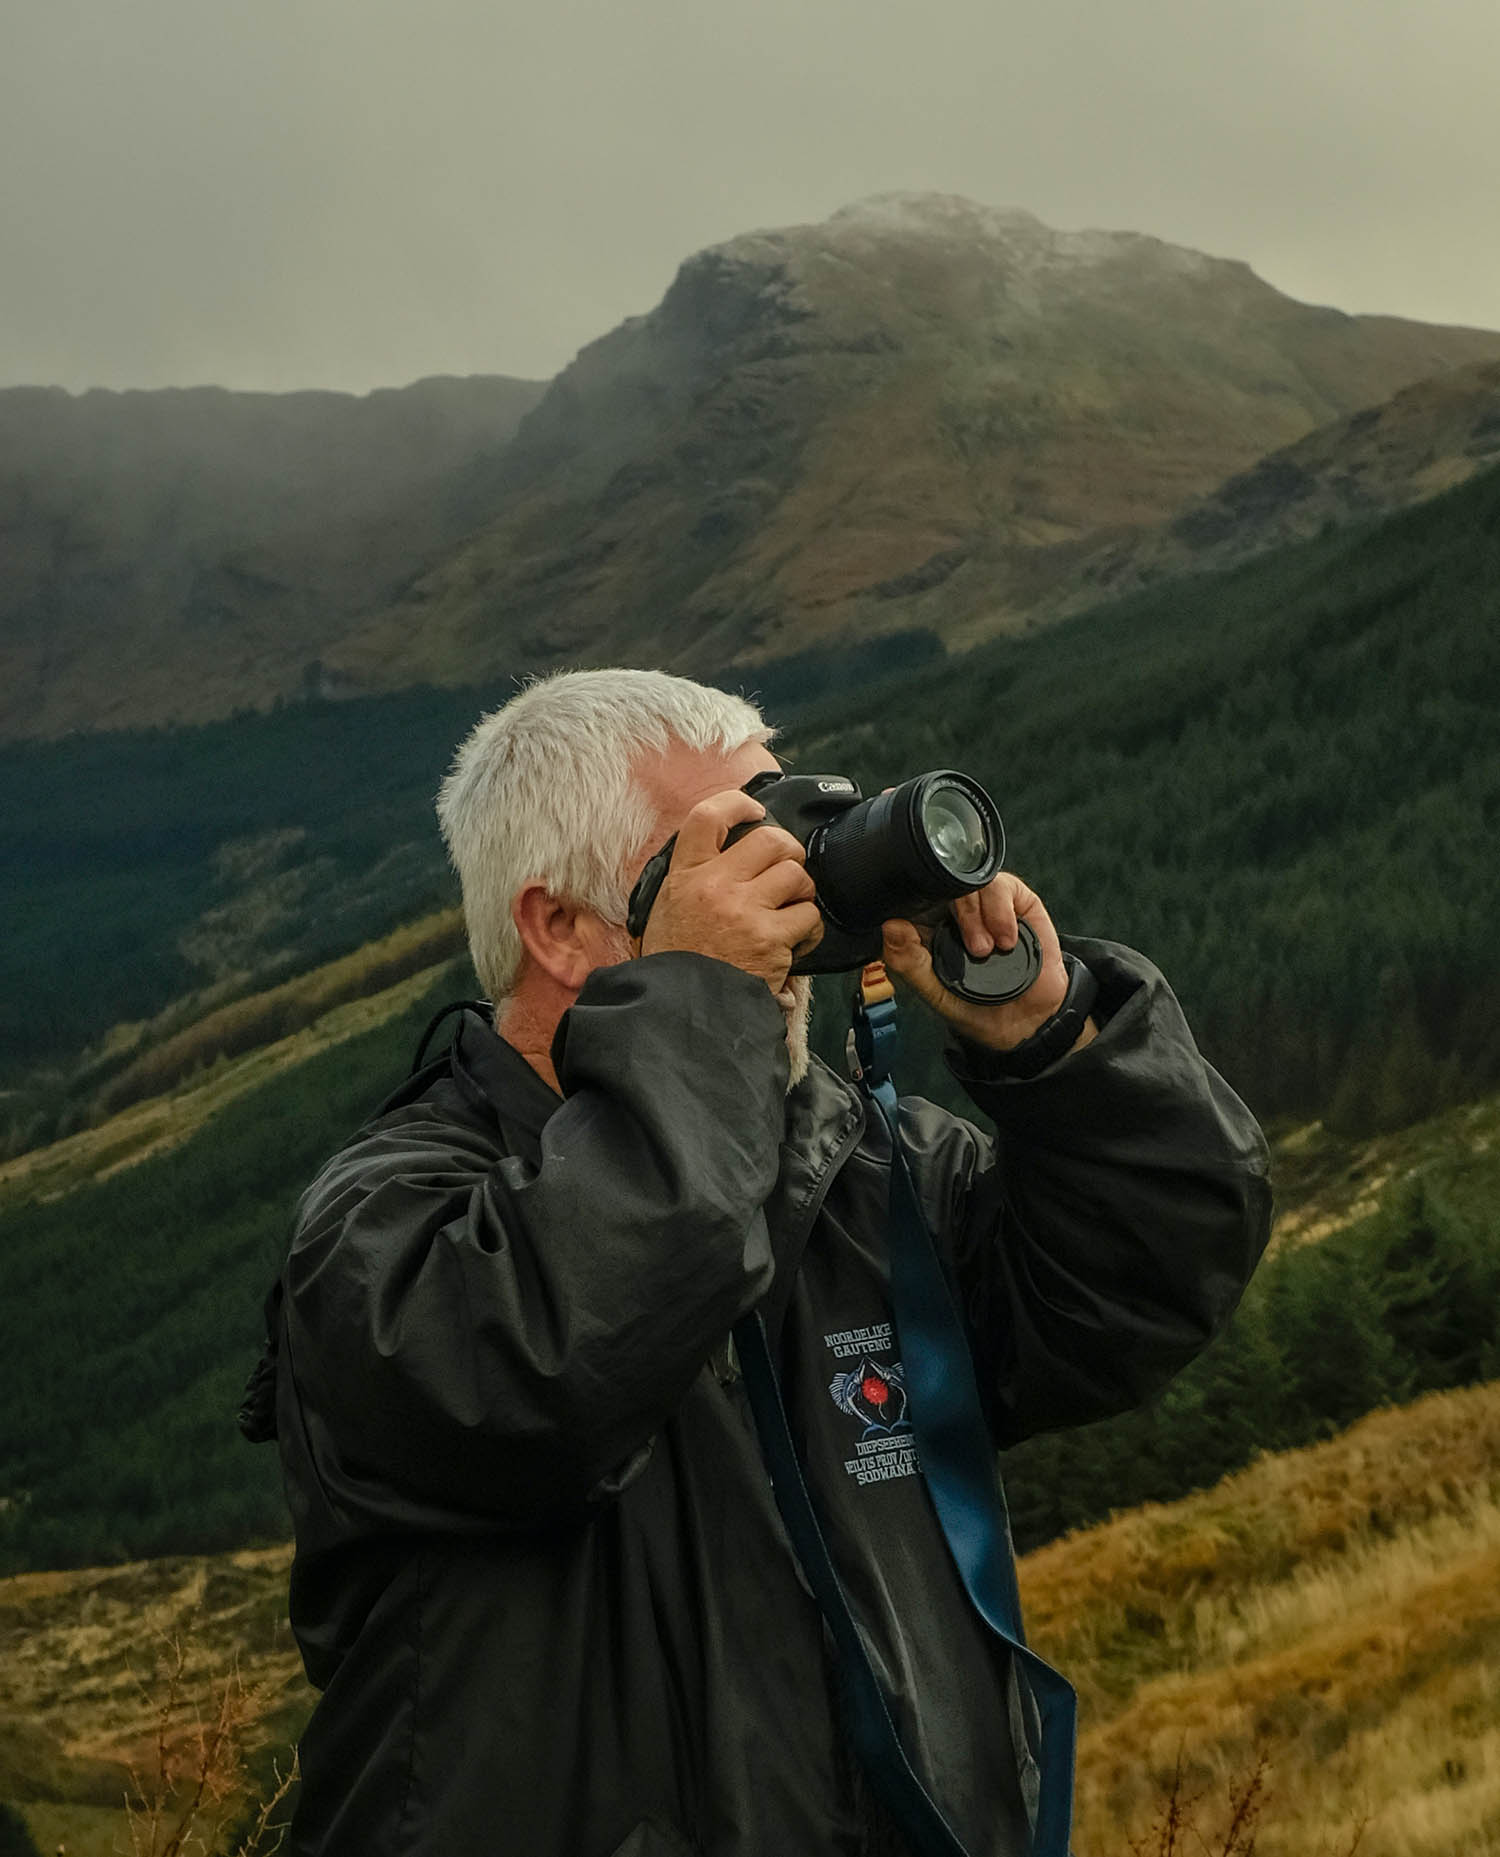 Photograph of a man taking photographs in the mountains